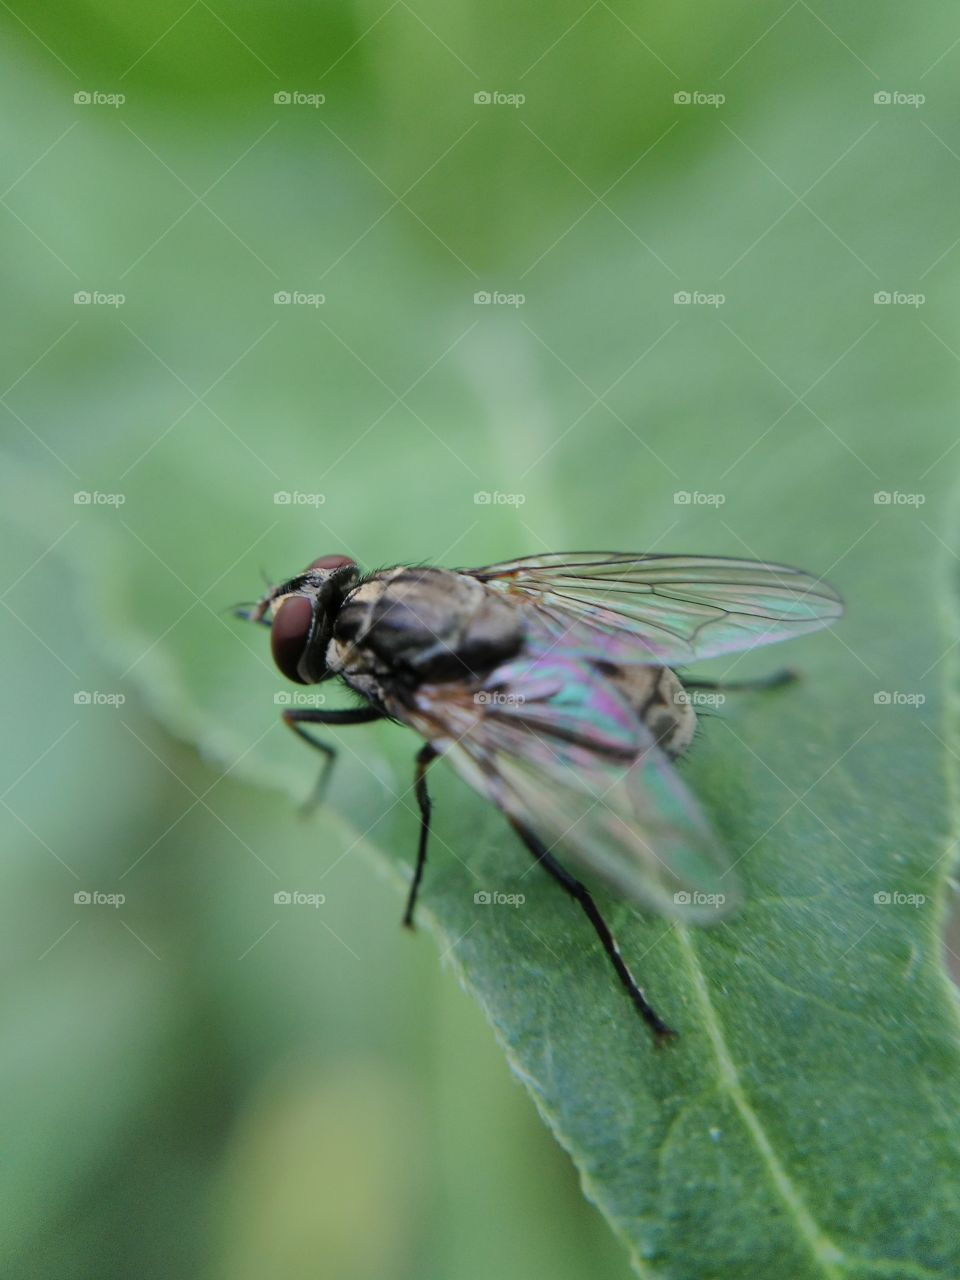 Close-up of housefly on green leaf